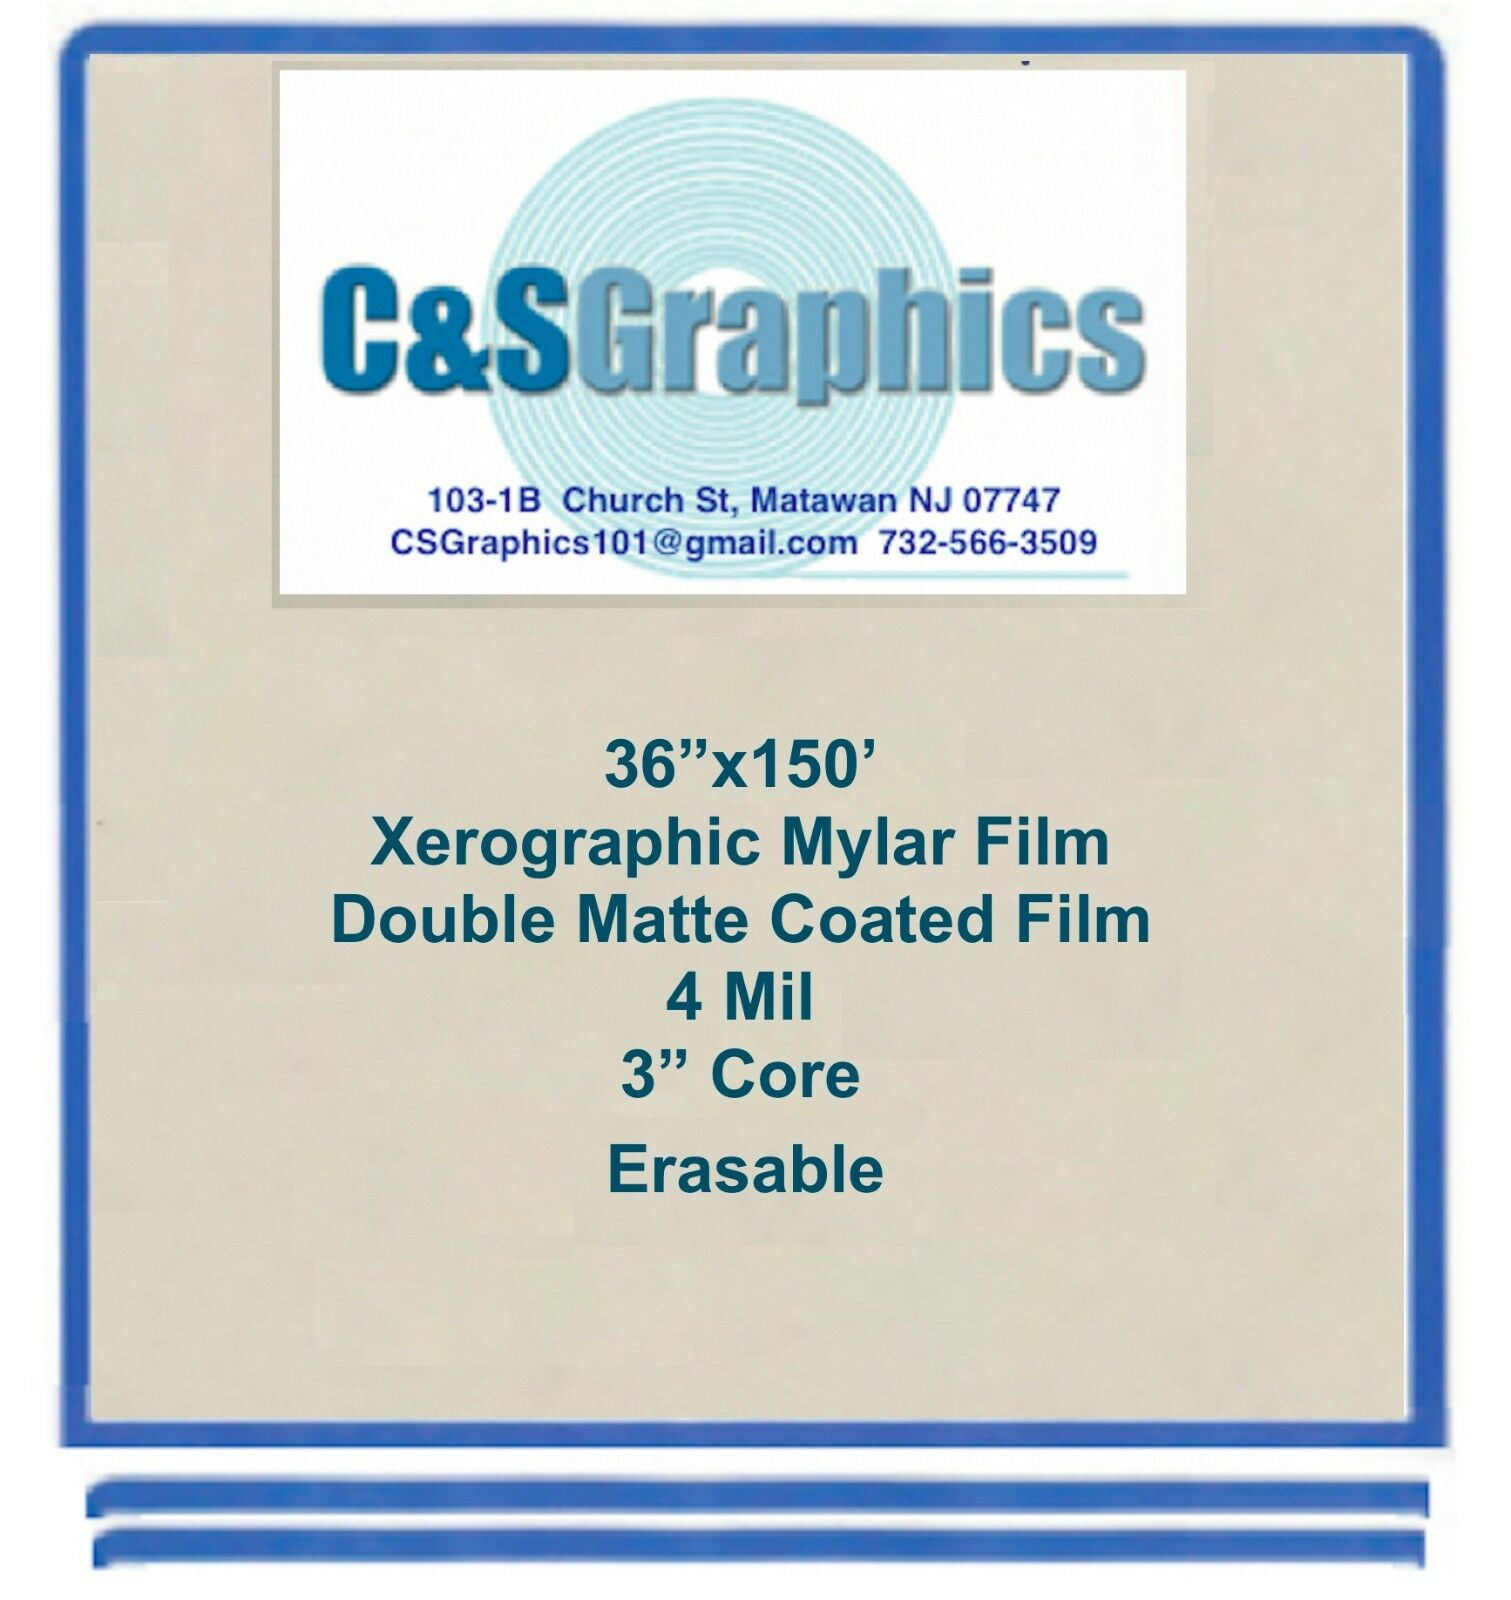 36 x150' Roll 4 mil Mylar Drafting Film, Double Matte Xerographic Erasable